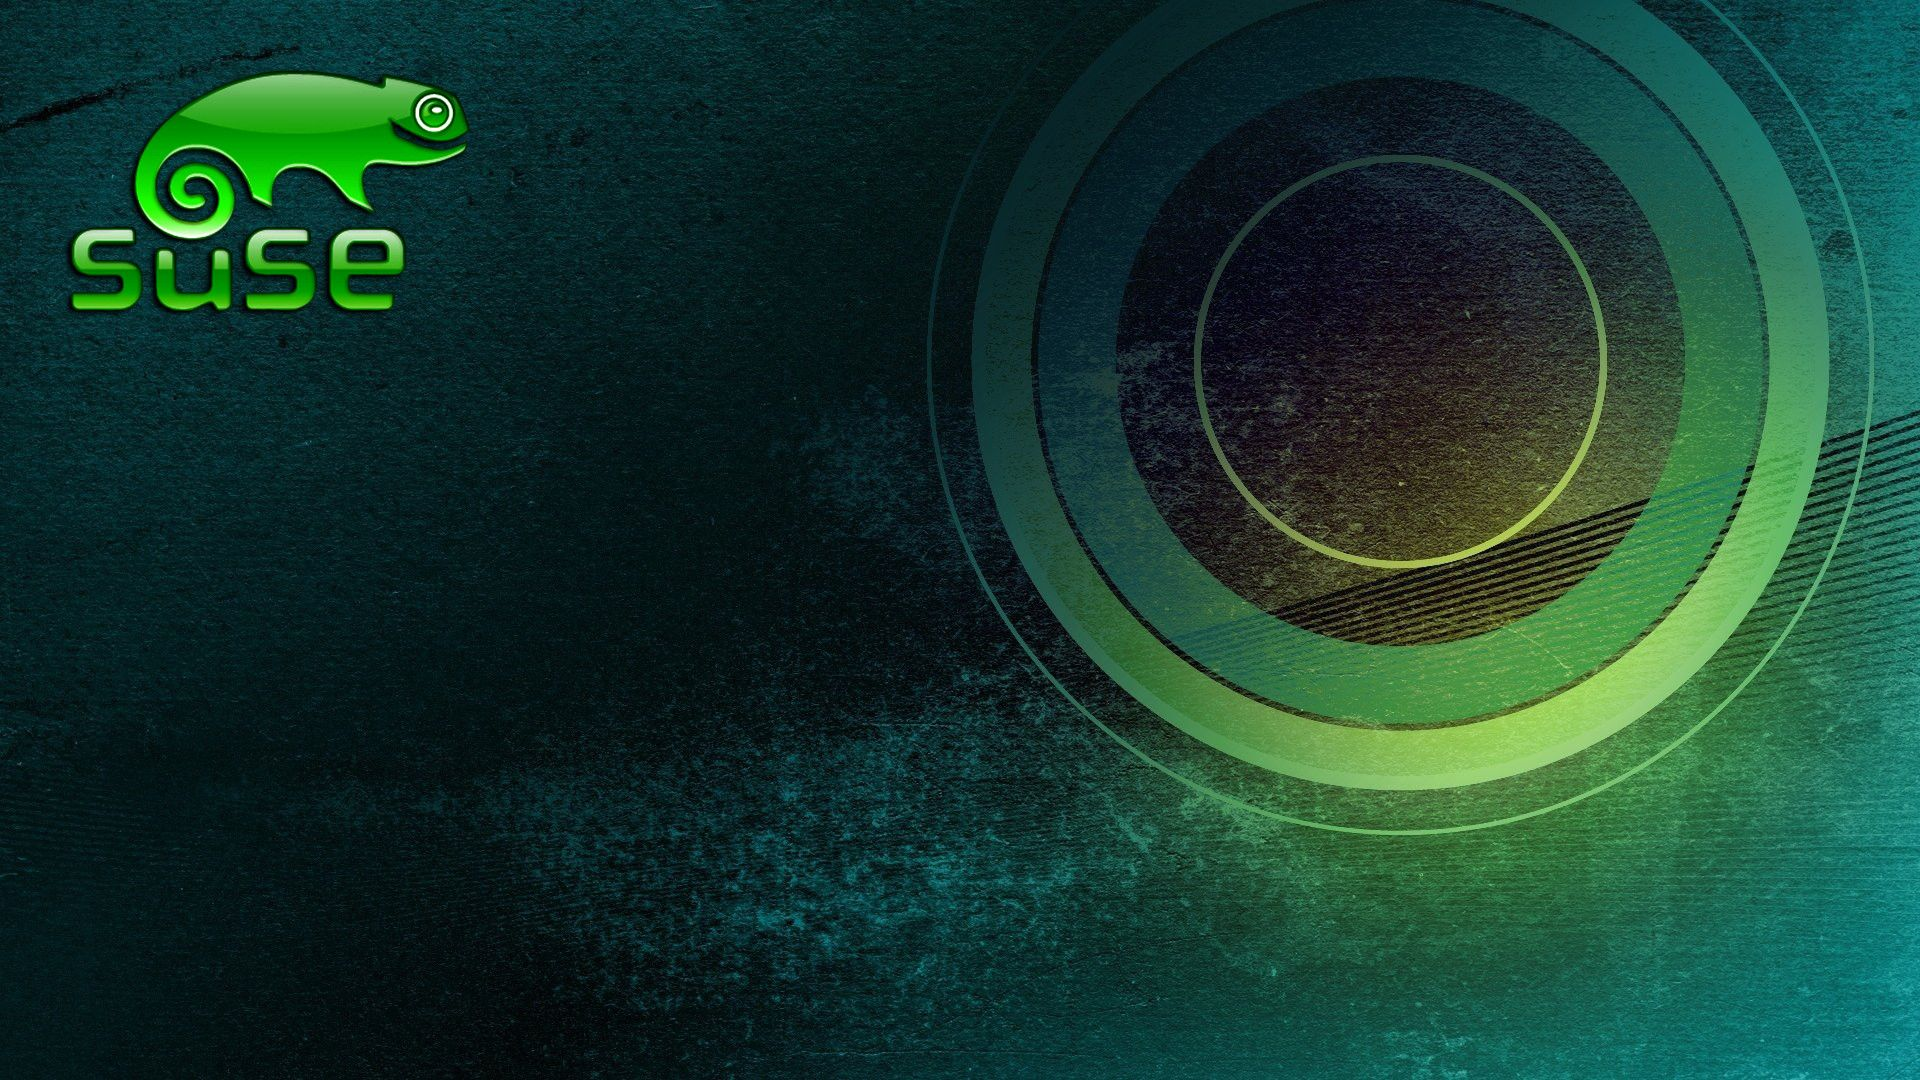 1920x1080 Opensuse Wallpapers (73+ images)